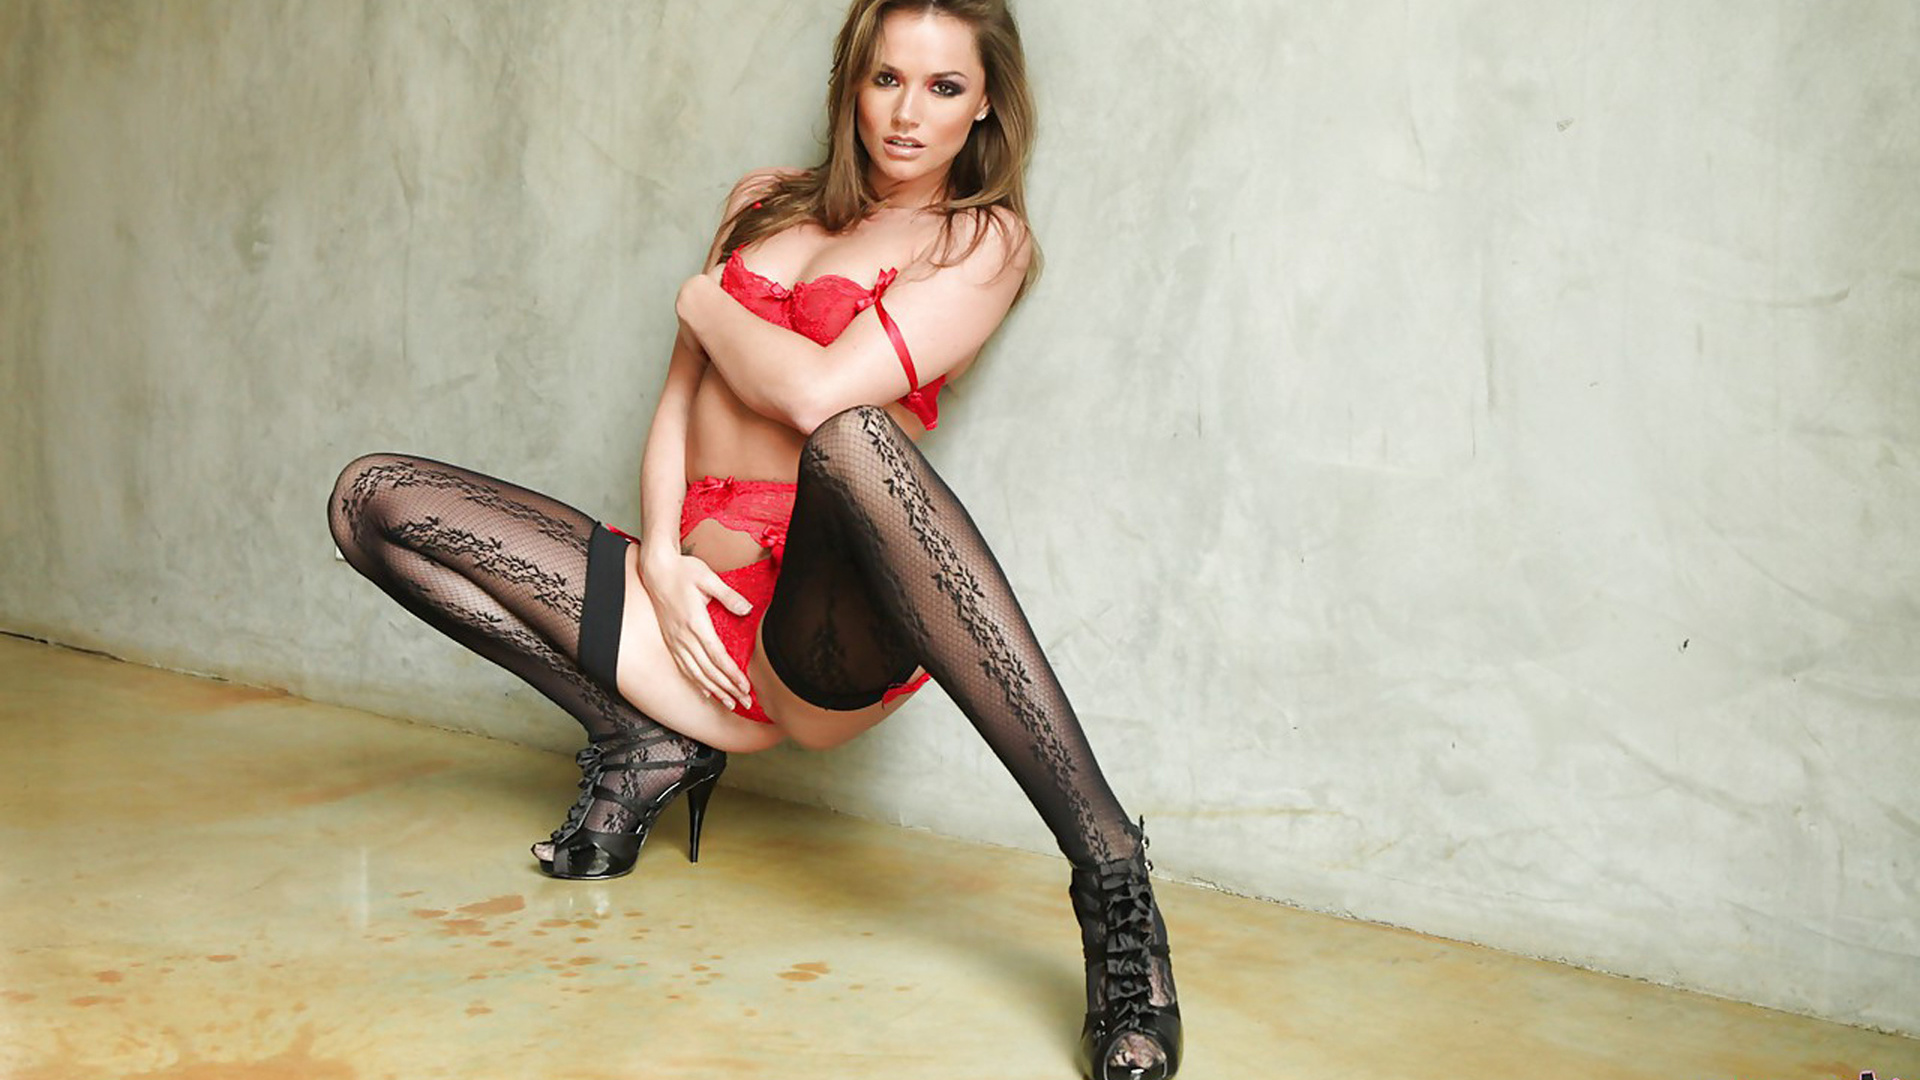 adult model, bra, brunette, cleavage, high heels, hot, leg, lingerie, porn, pornstar, red, sexy, stockings, tori black, underwear